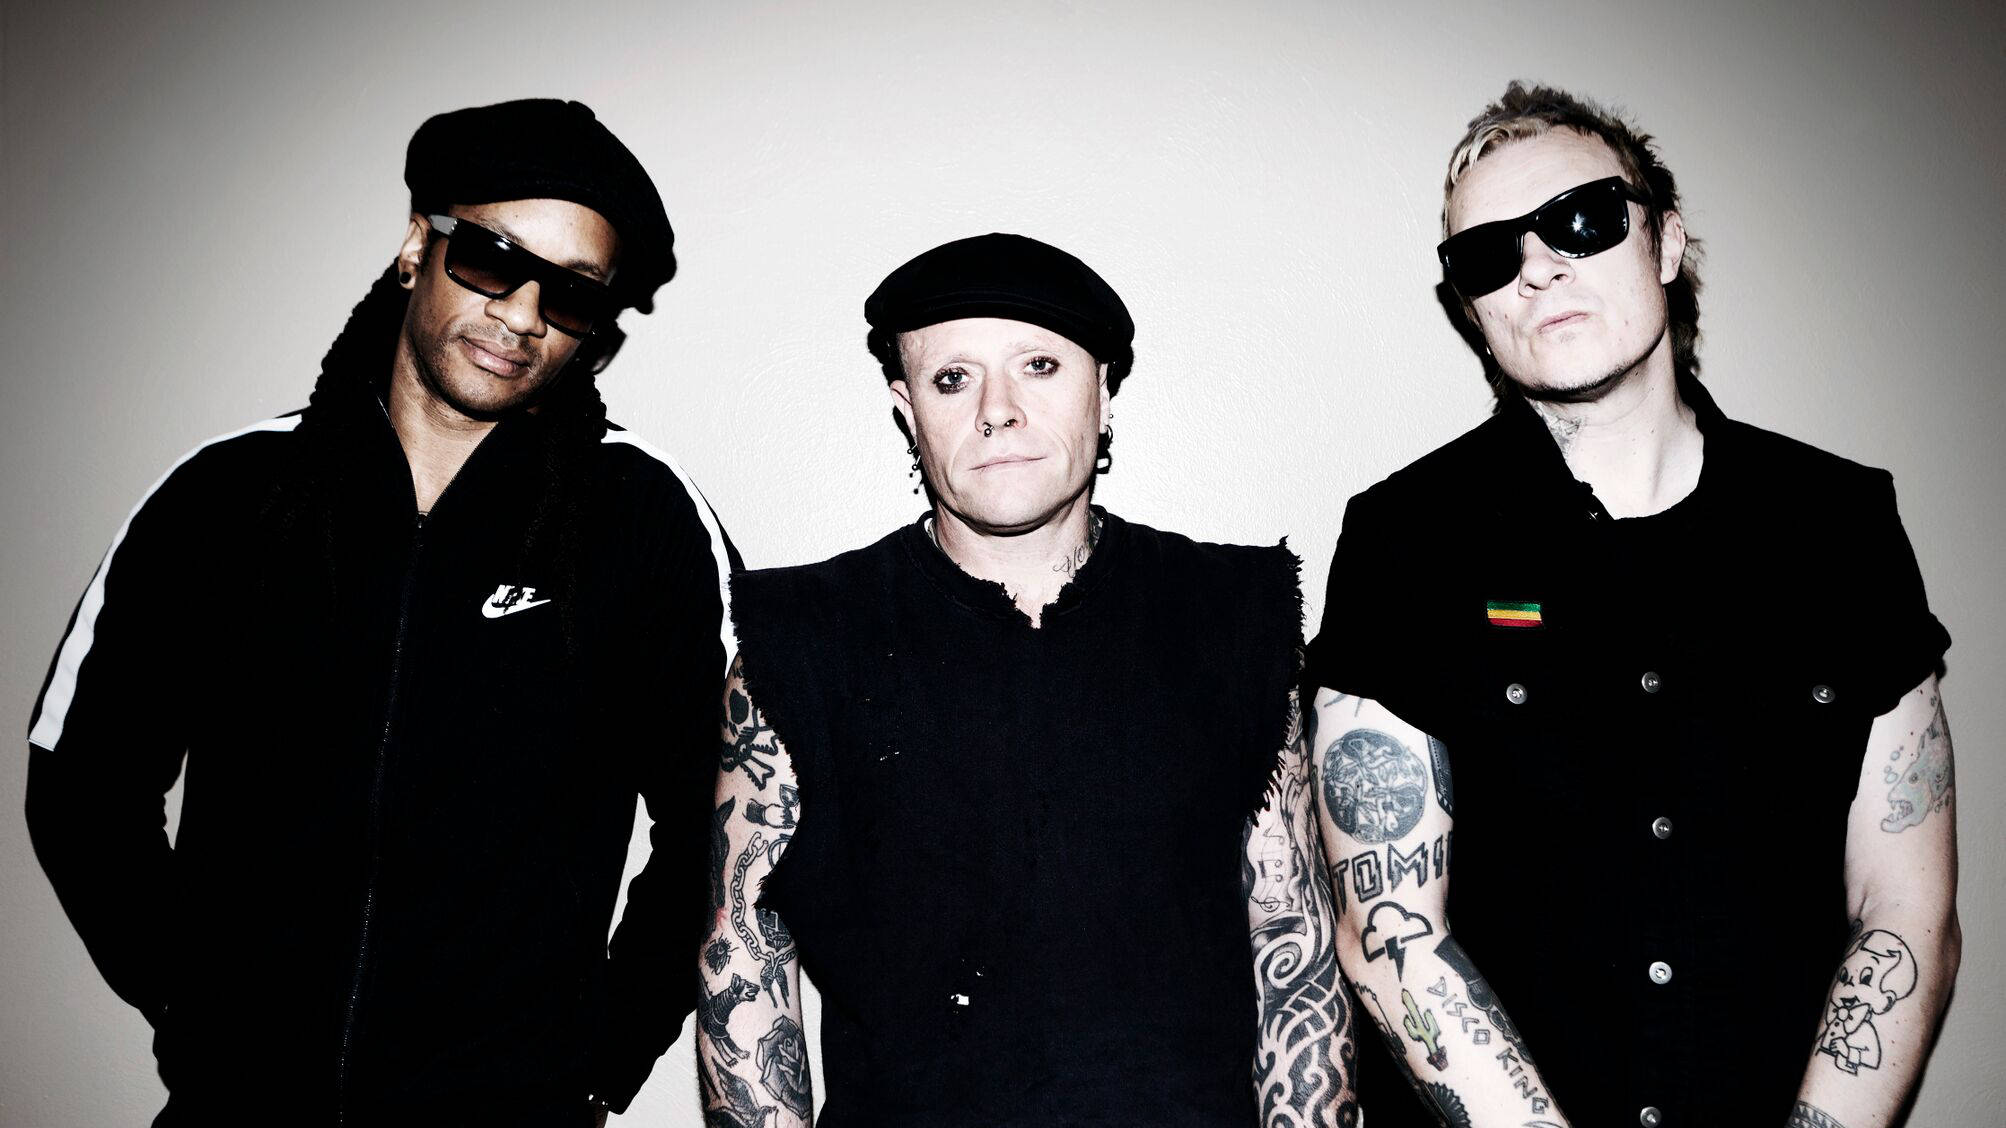 The Prodigy pay tribute to Keith Flint on what would have been his 50th Birthday